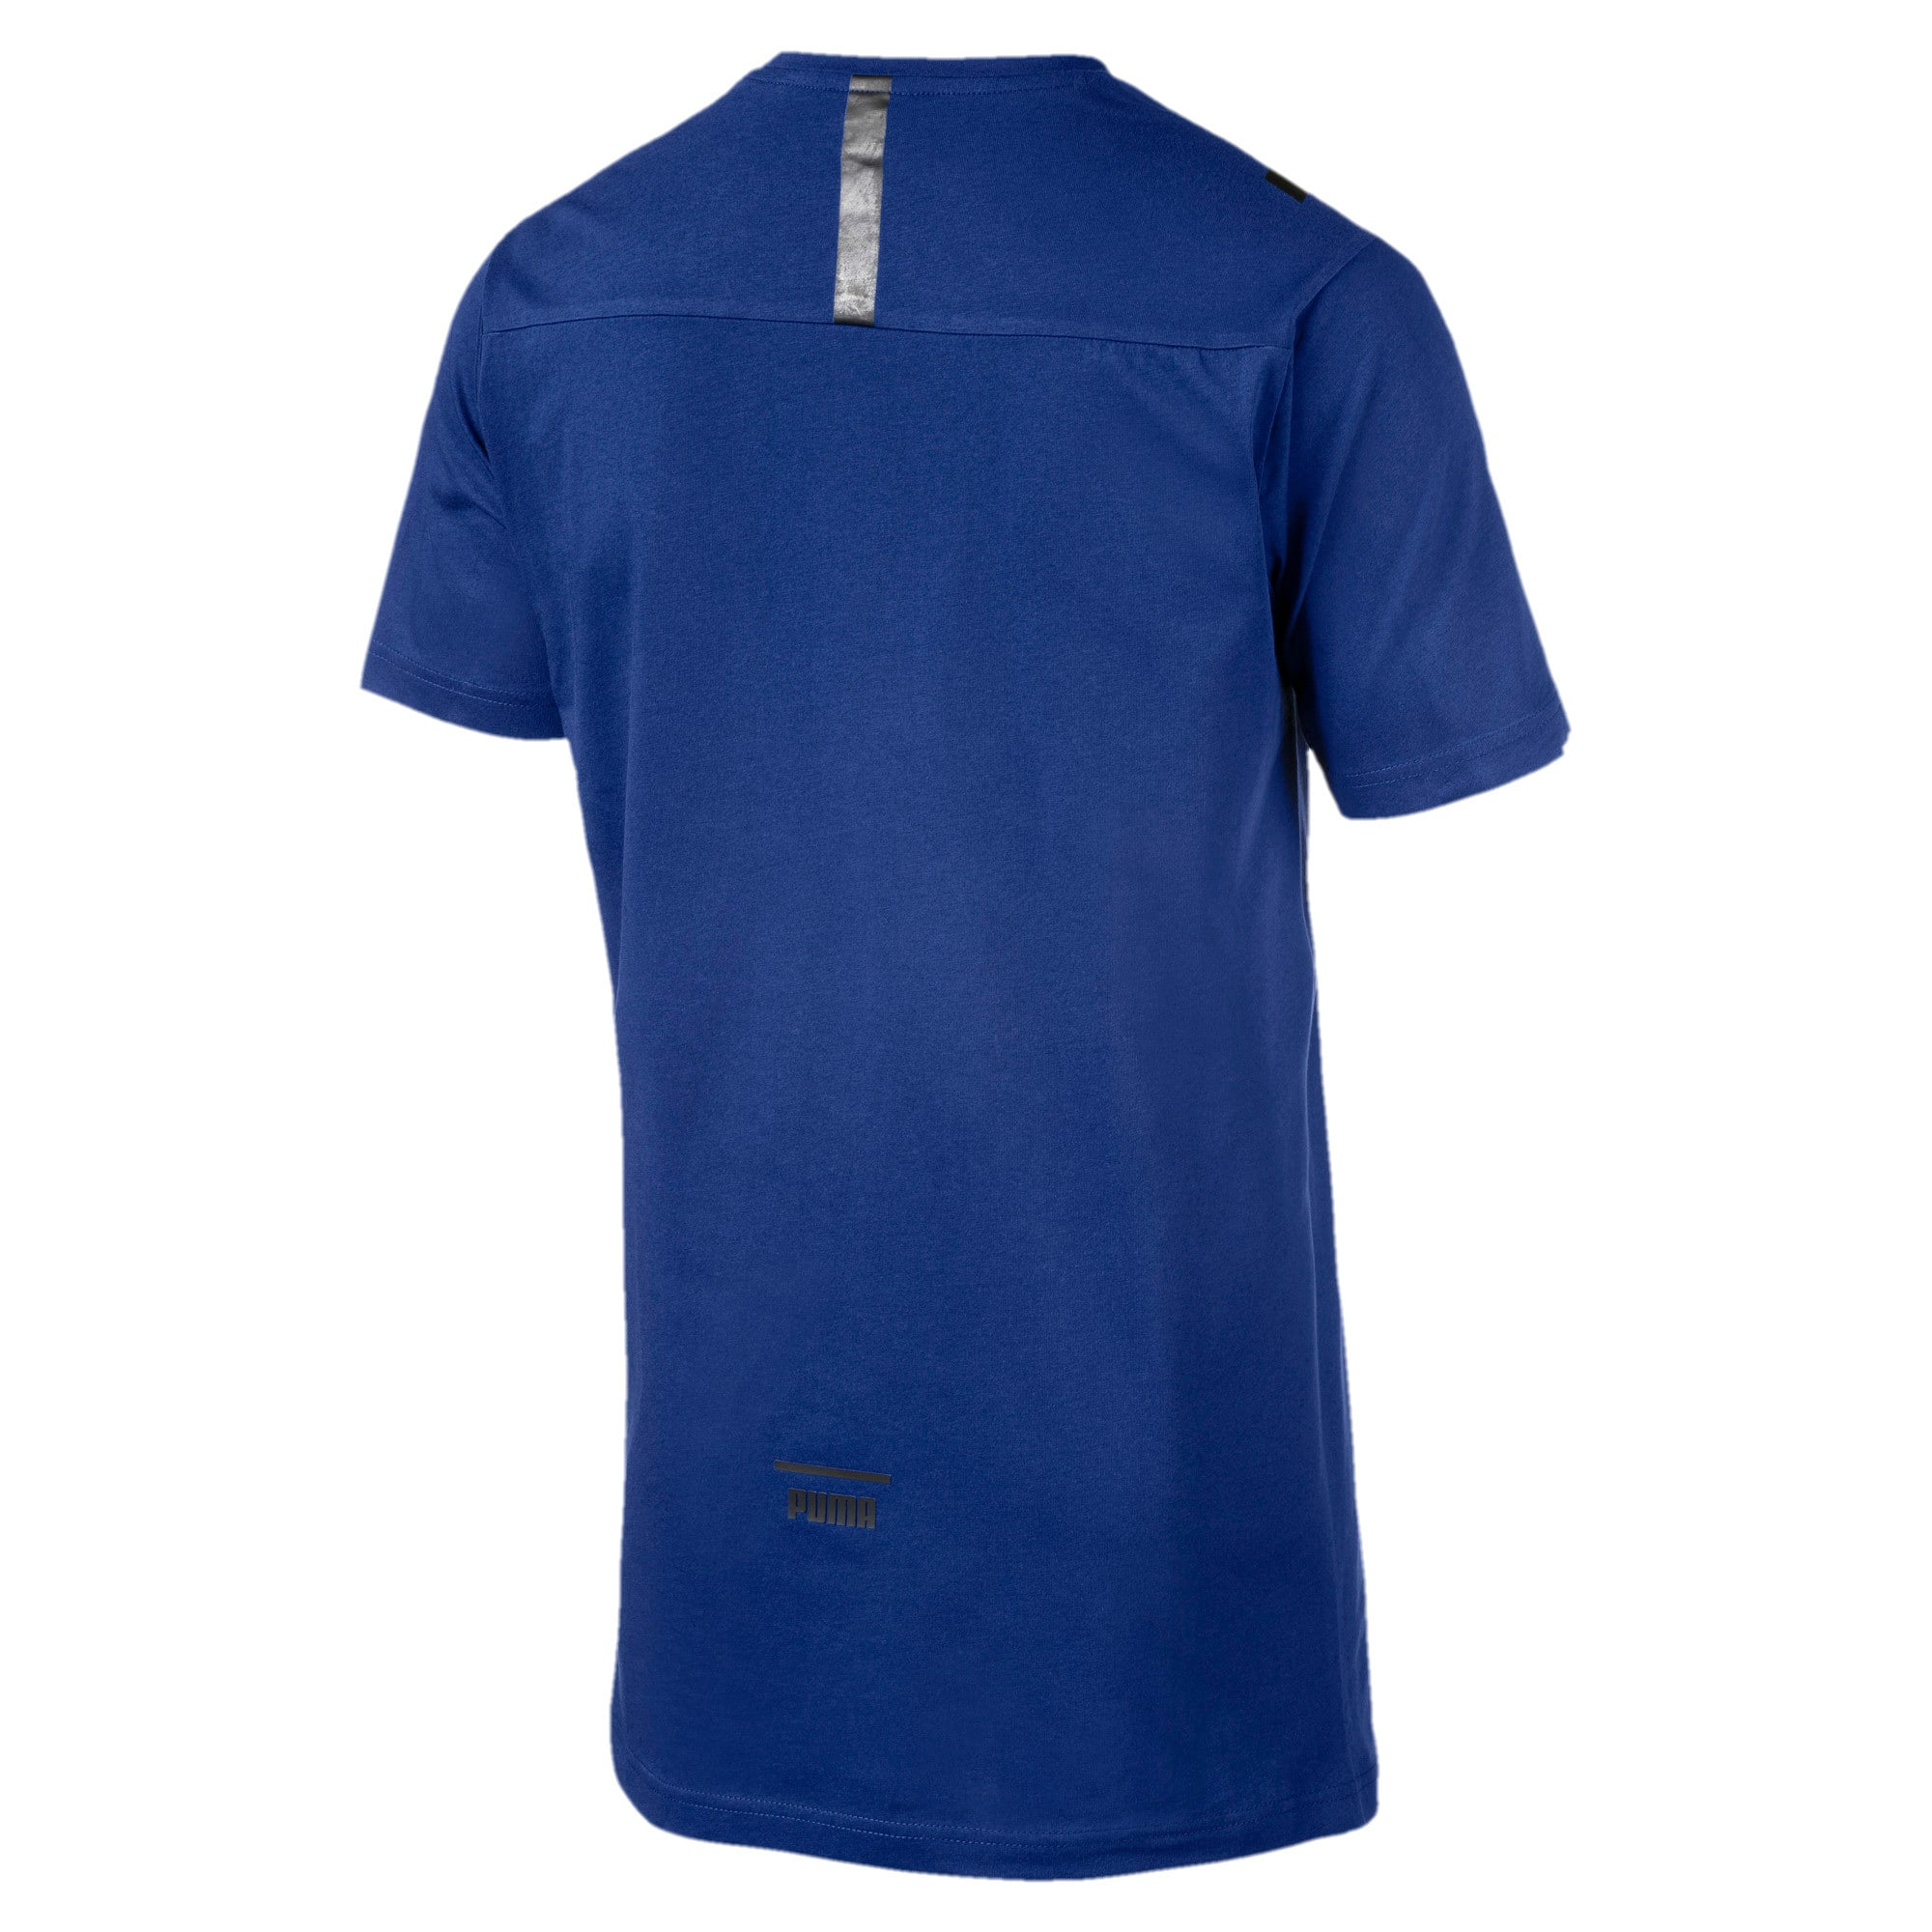 Thumbnail 3 of Pace Men's Tee, Sodalite Blue, medium